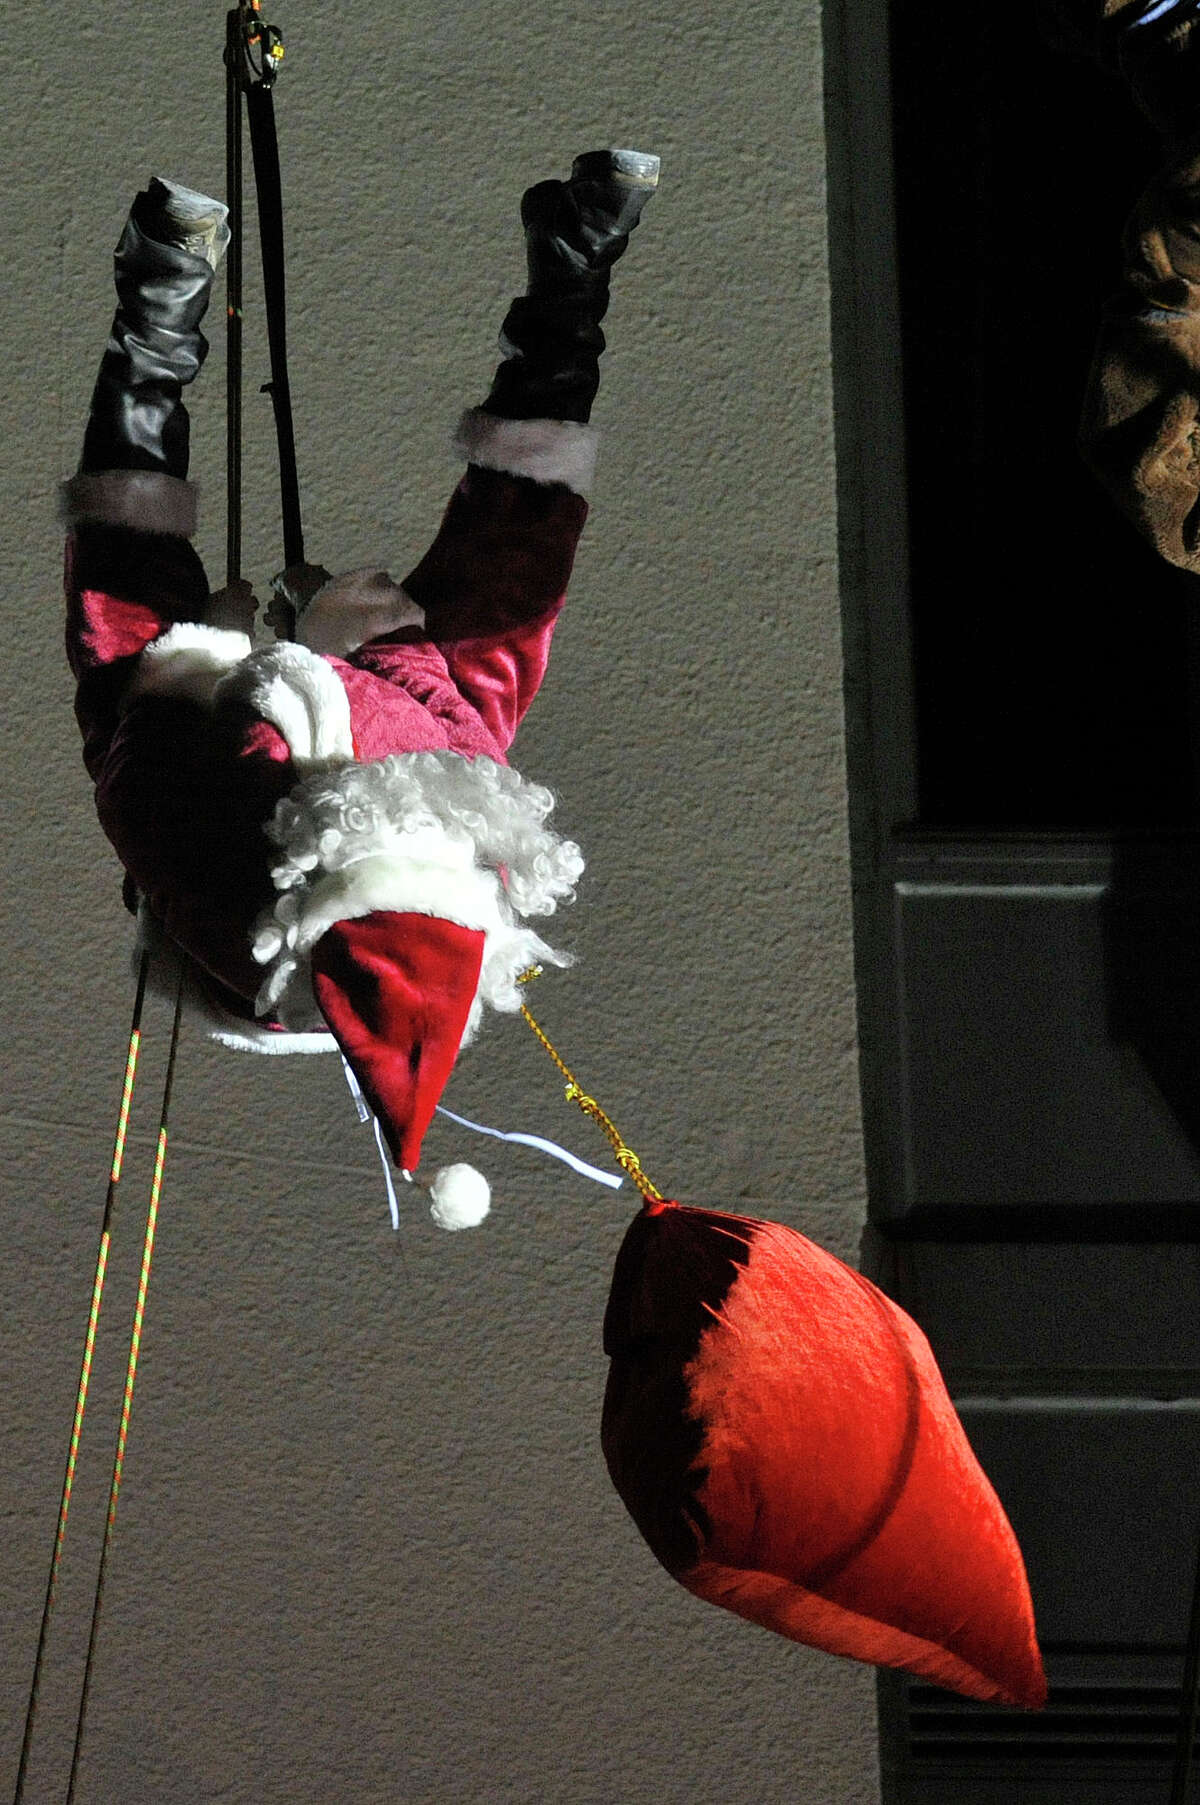 Santa, played by Brian VanOrsdel, hangs upside-down while rappeling down the Landmark Tower during the 2014 Heights and Lignts Rappel and Tree Lighting event in Stamford. This year's event is Sunday Dec. 5 at 6 p.m.